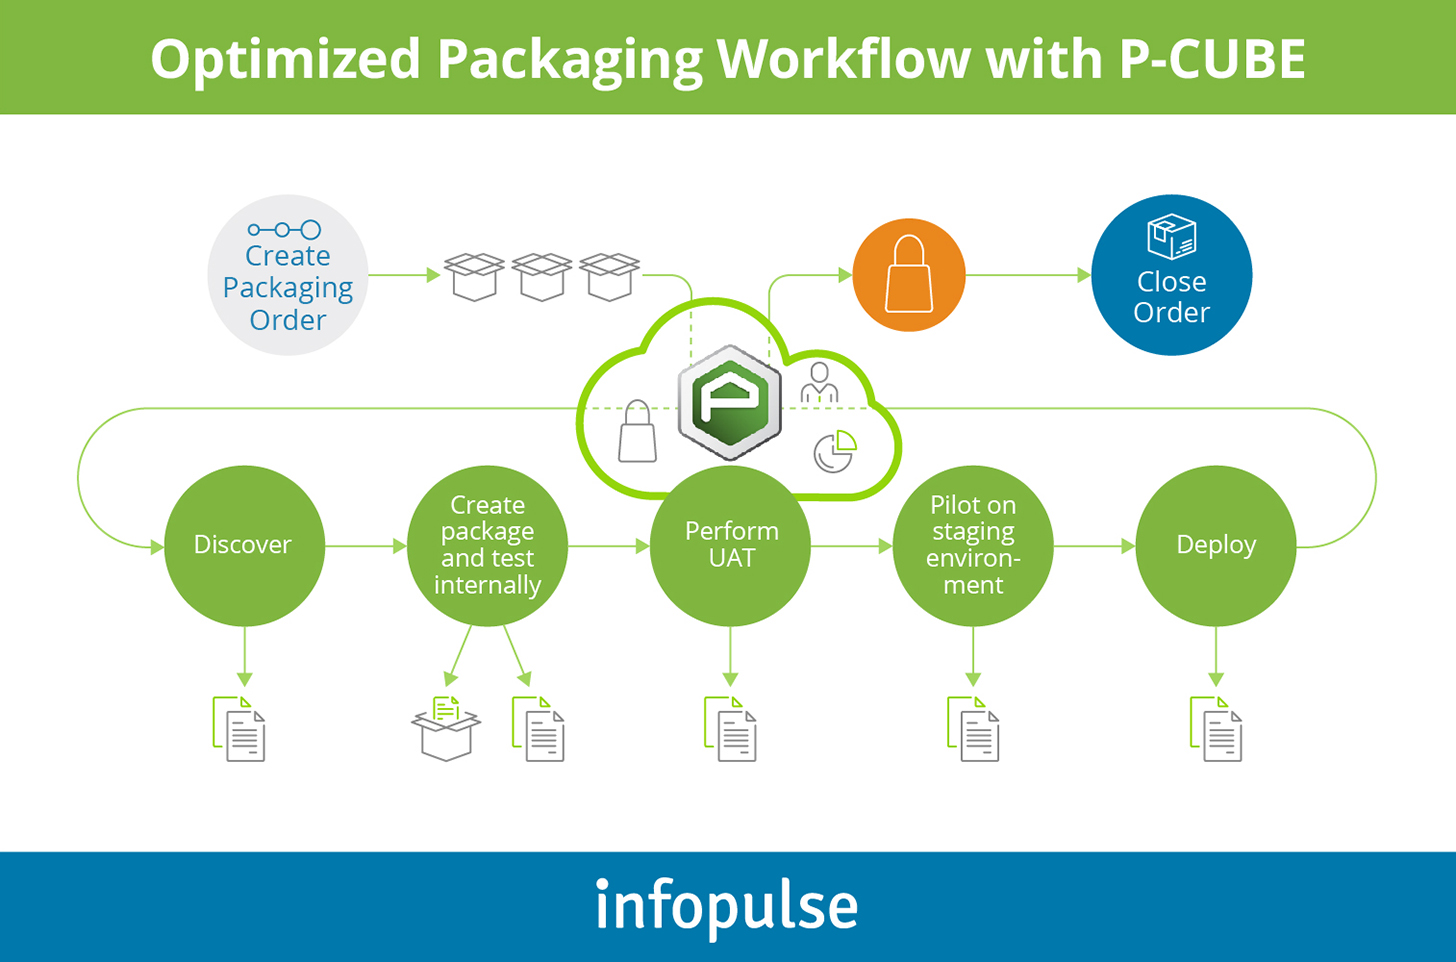 Optimized Packaging Workflow with P-CUBE  - Infopulse - 2